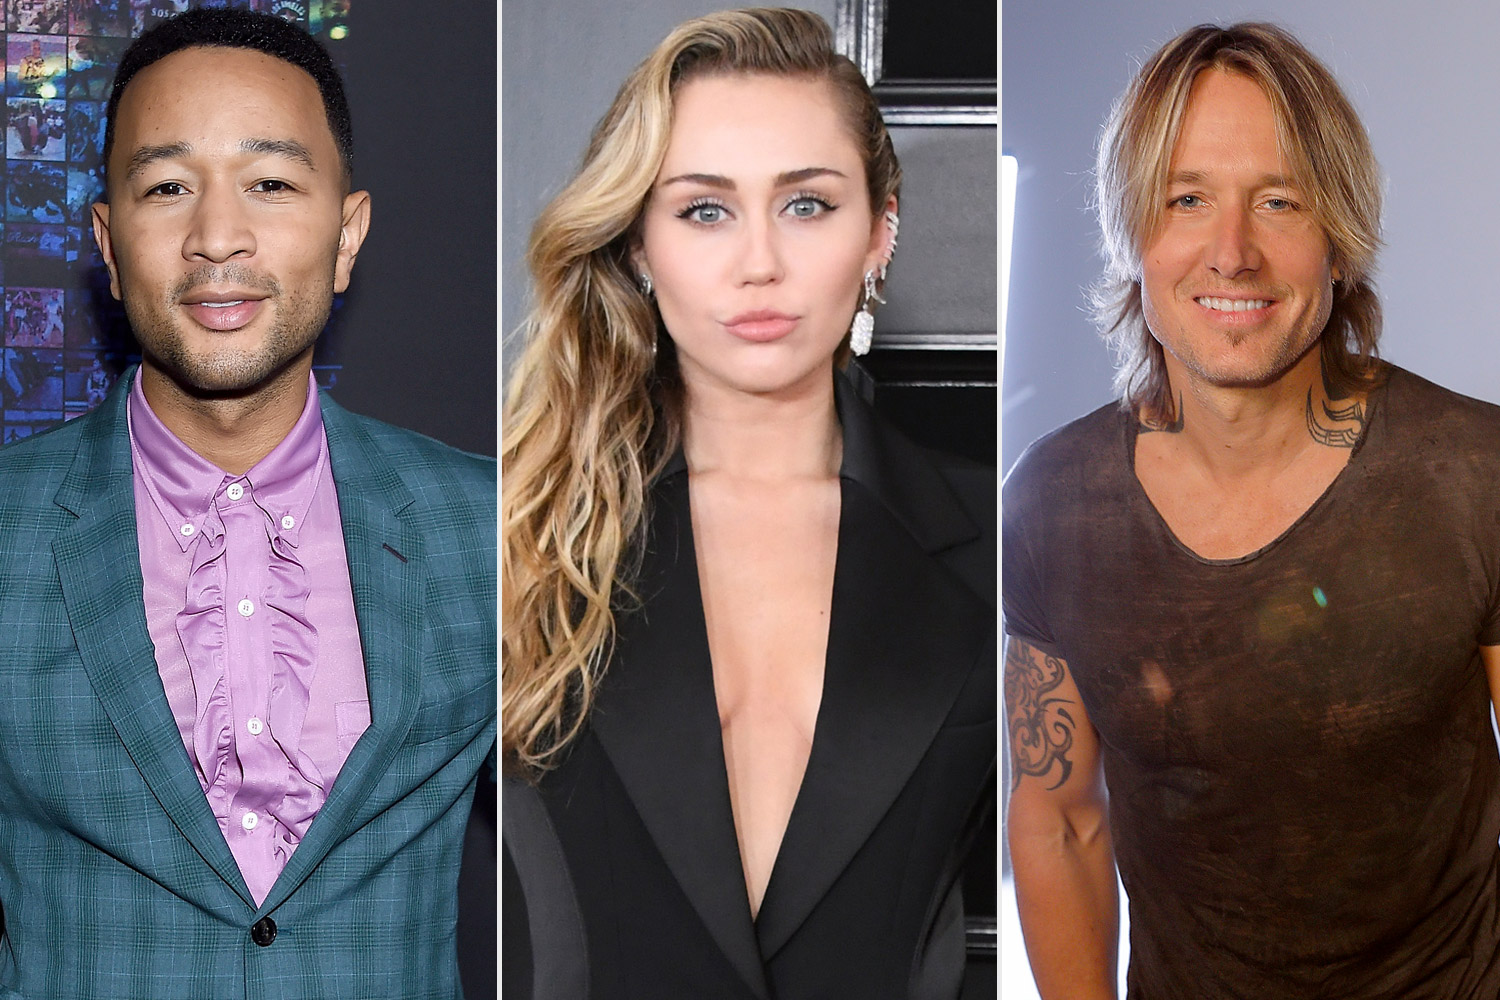 John Legend, Miley Cyrus, and Keith Urban